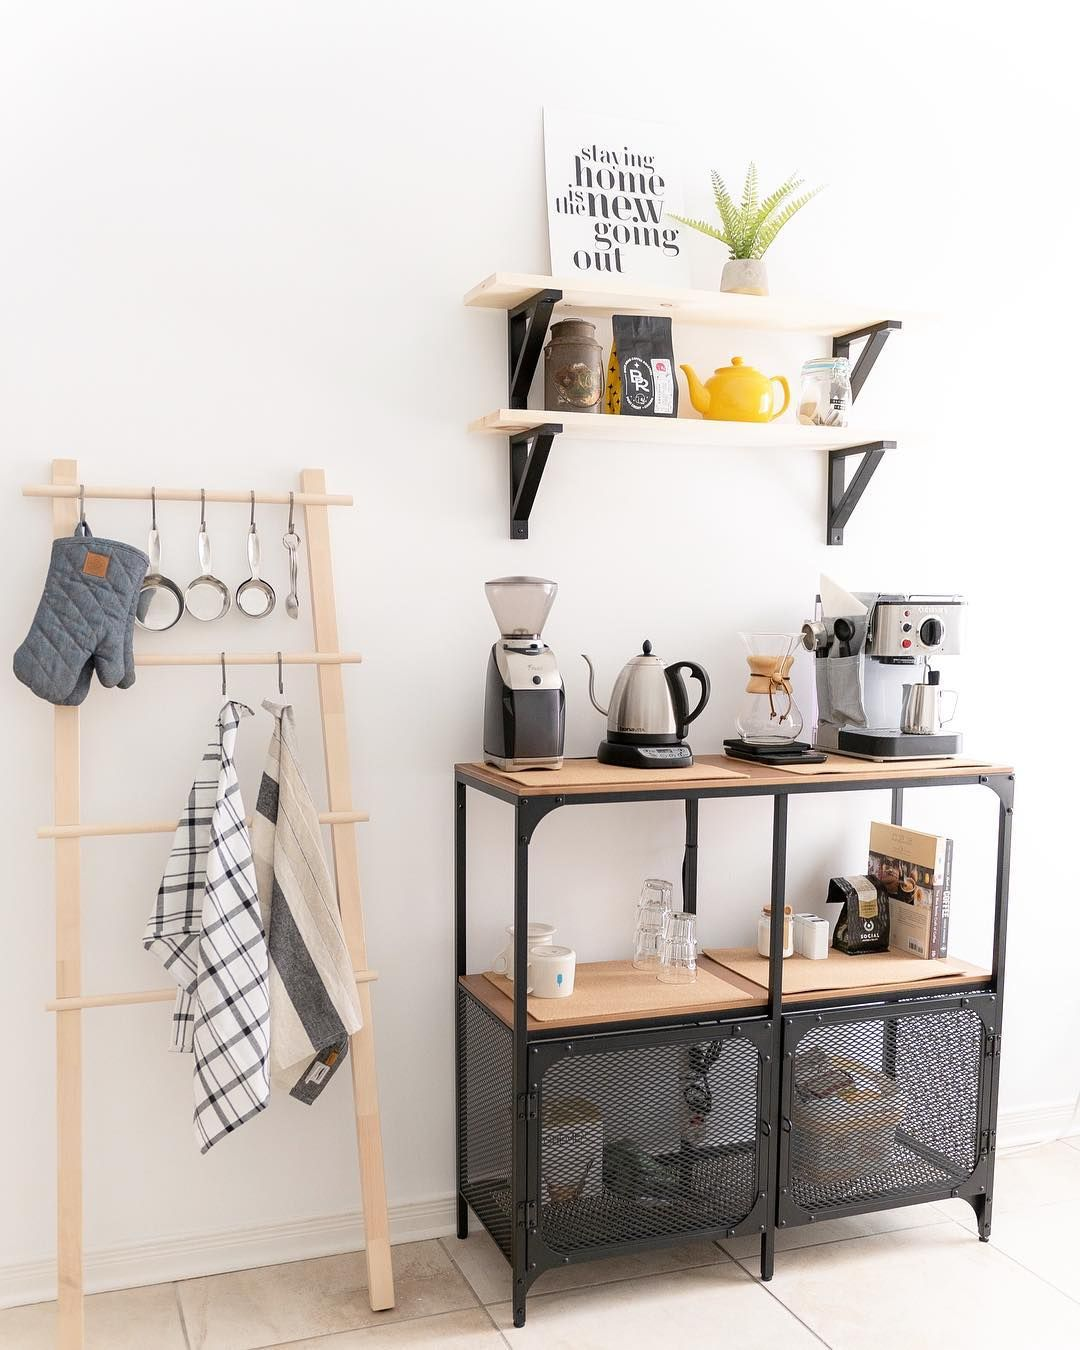 Ikeainspo Fan Gallery And Inspiration Coffee Bar Home Home Coffee Stations Bars For Home [ 1350 x 1080 Pixel ]